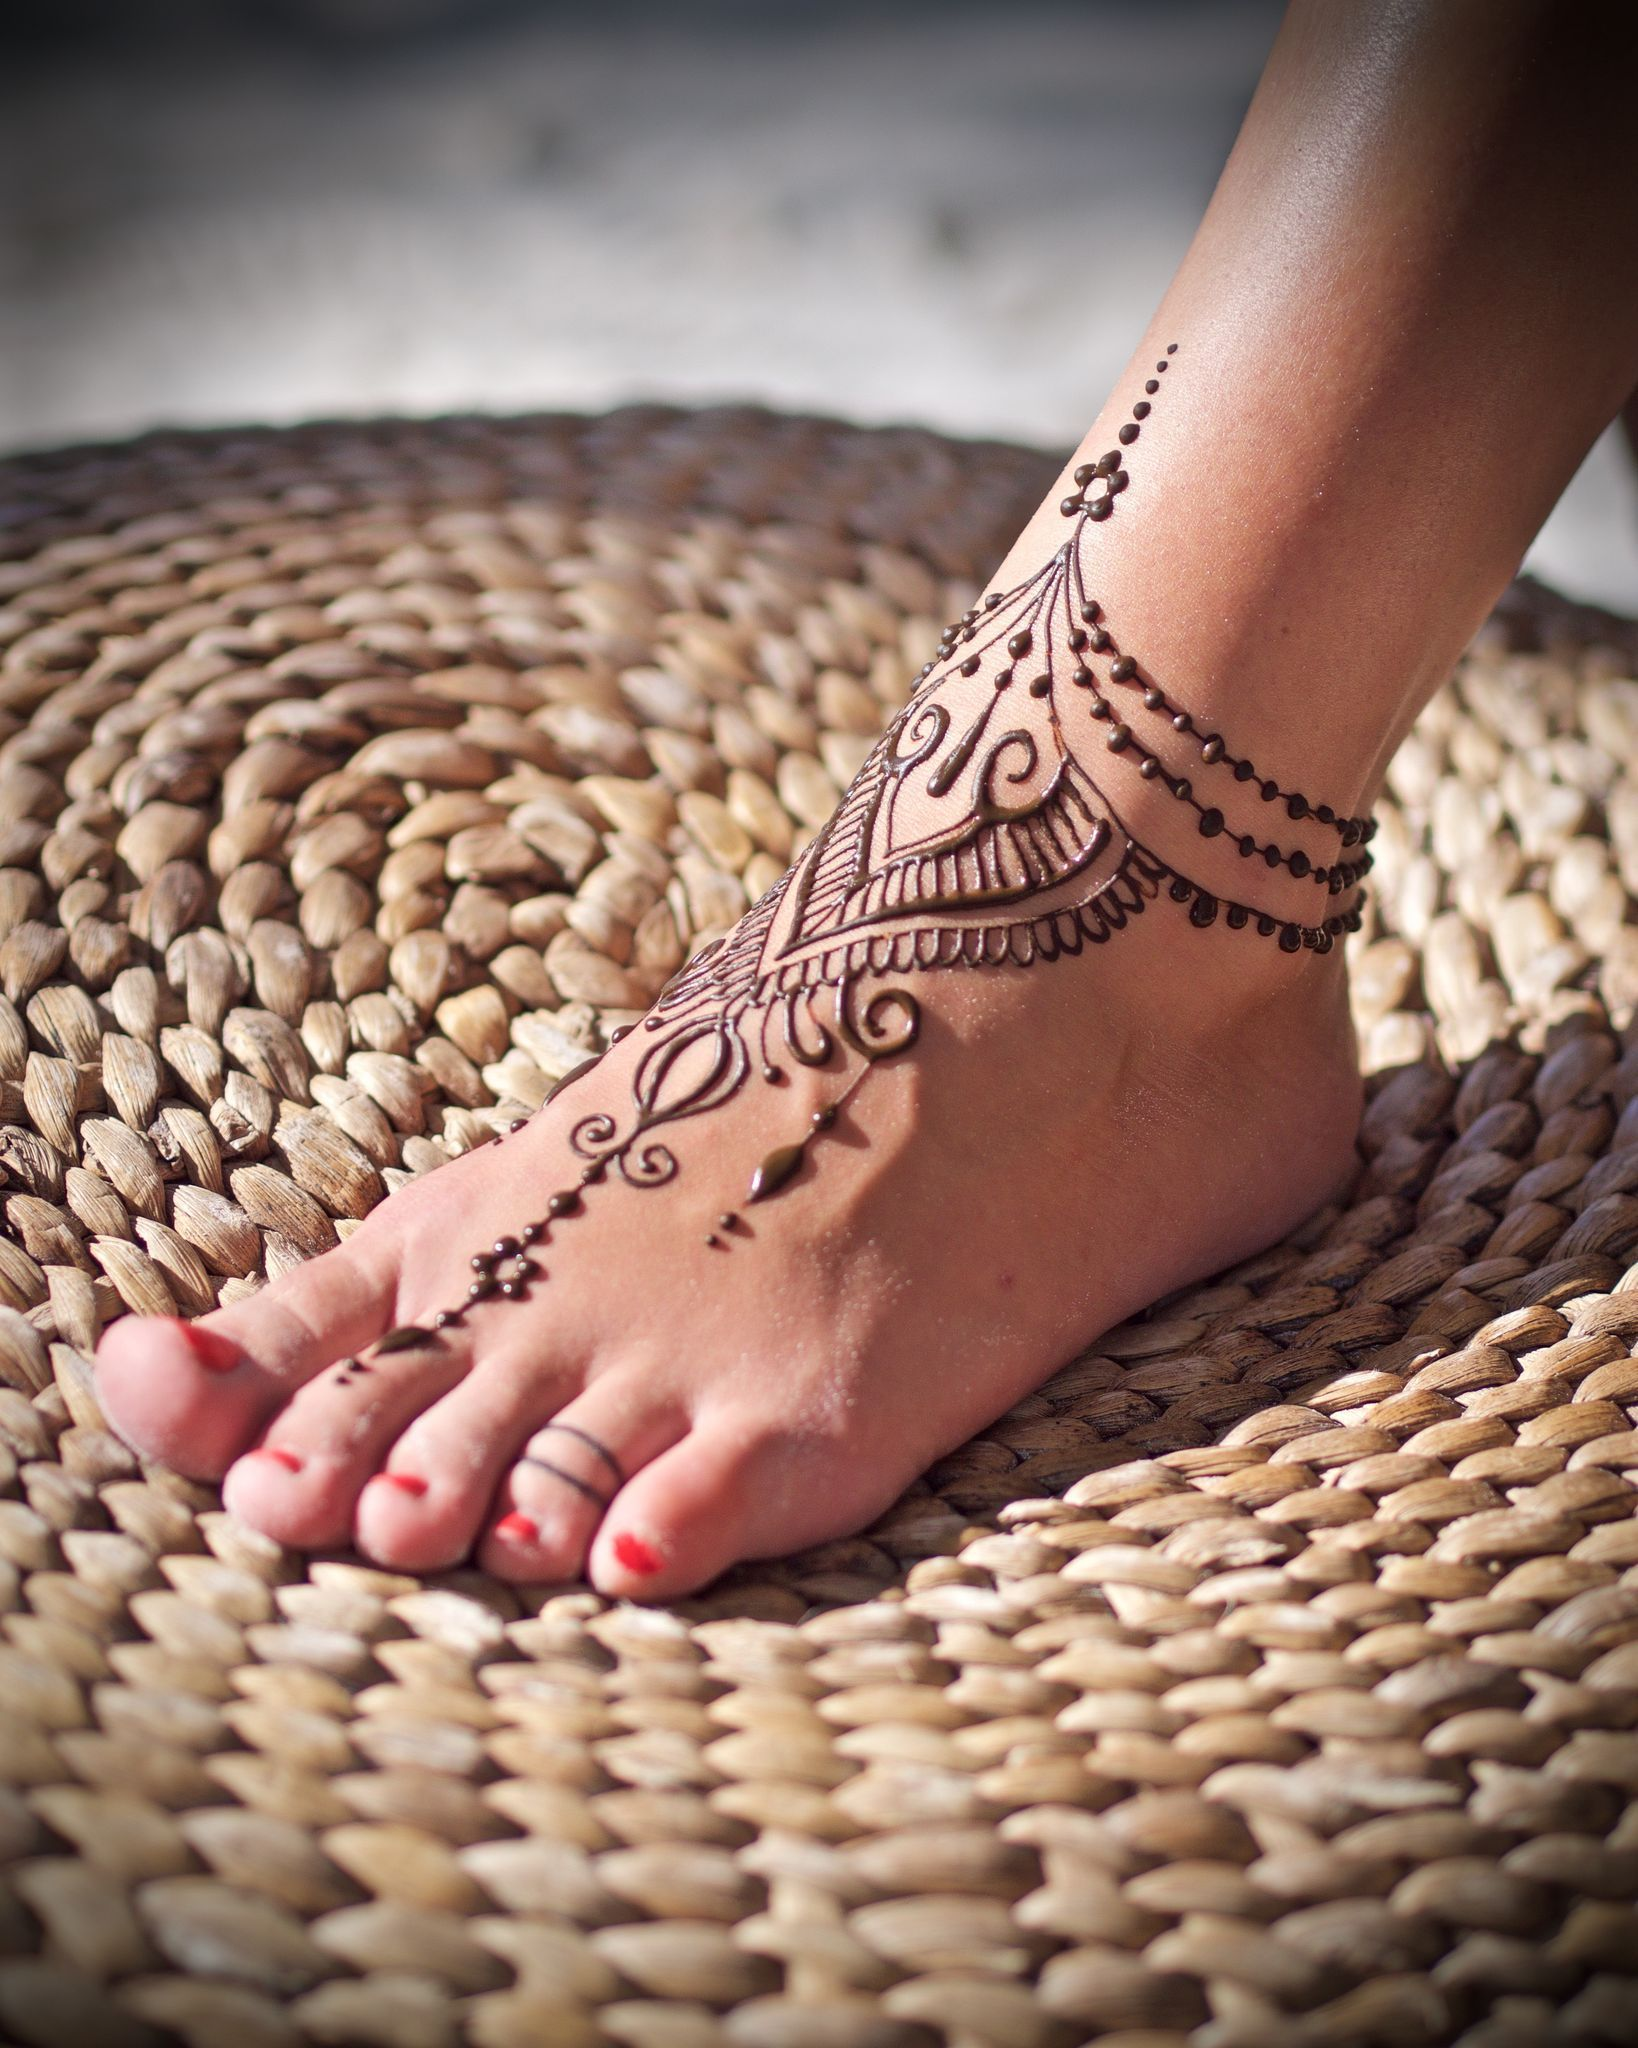 Pin by Mel Puente on Beauty Pinterest Henna Henna designs and